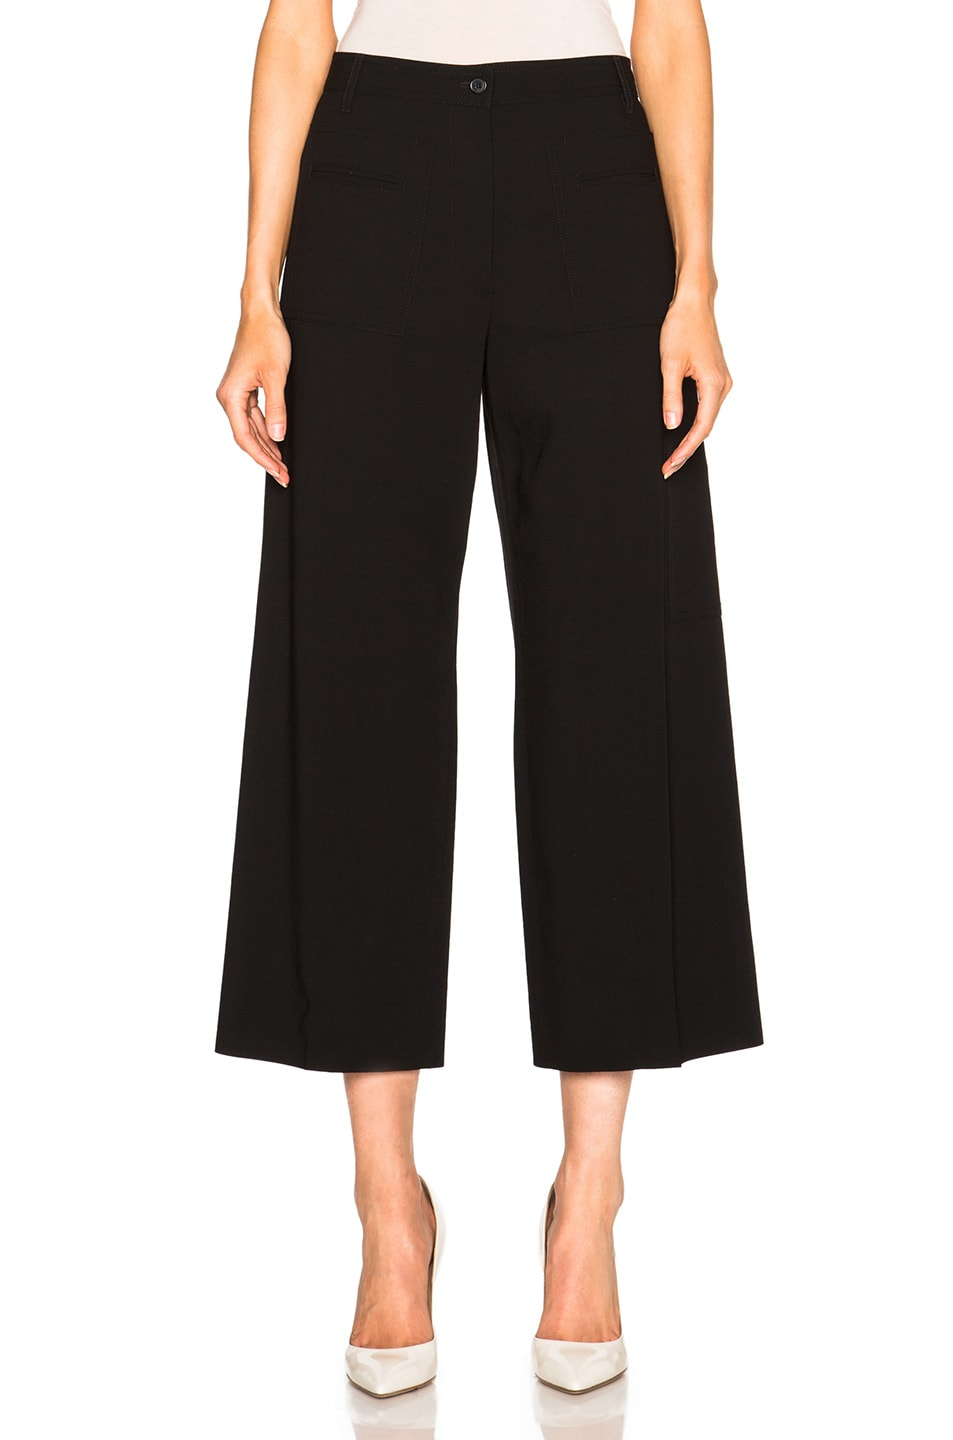 wide-leg trousers - Black Maison Martin Margiela